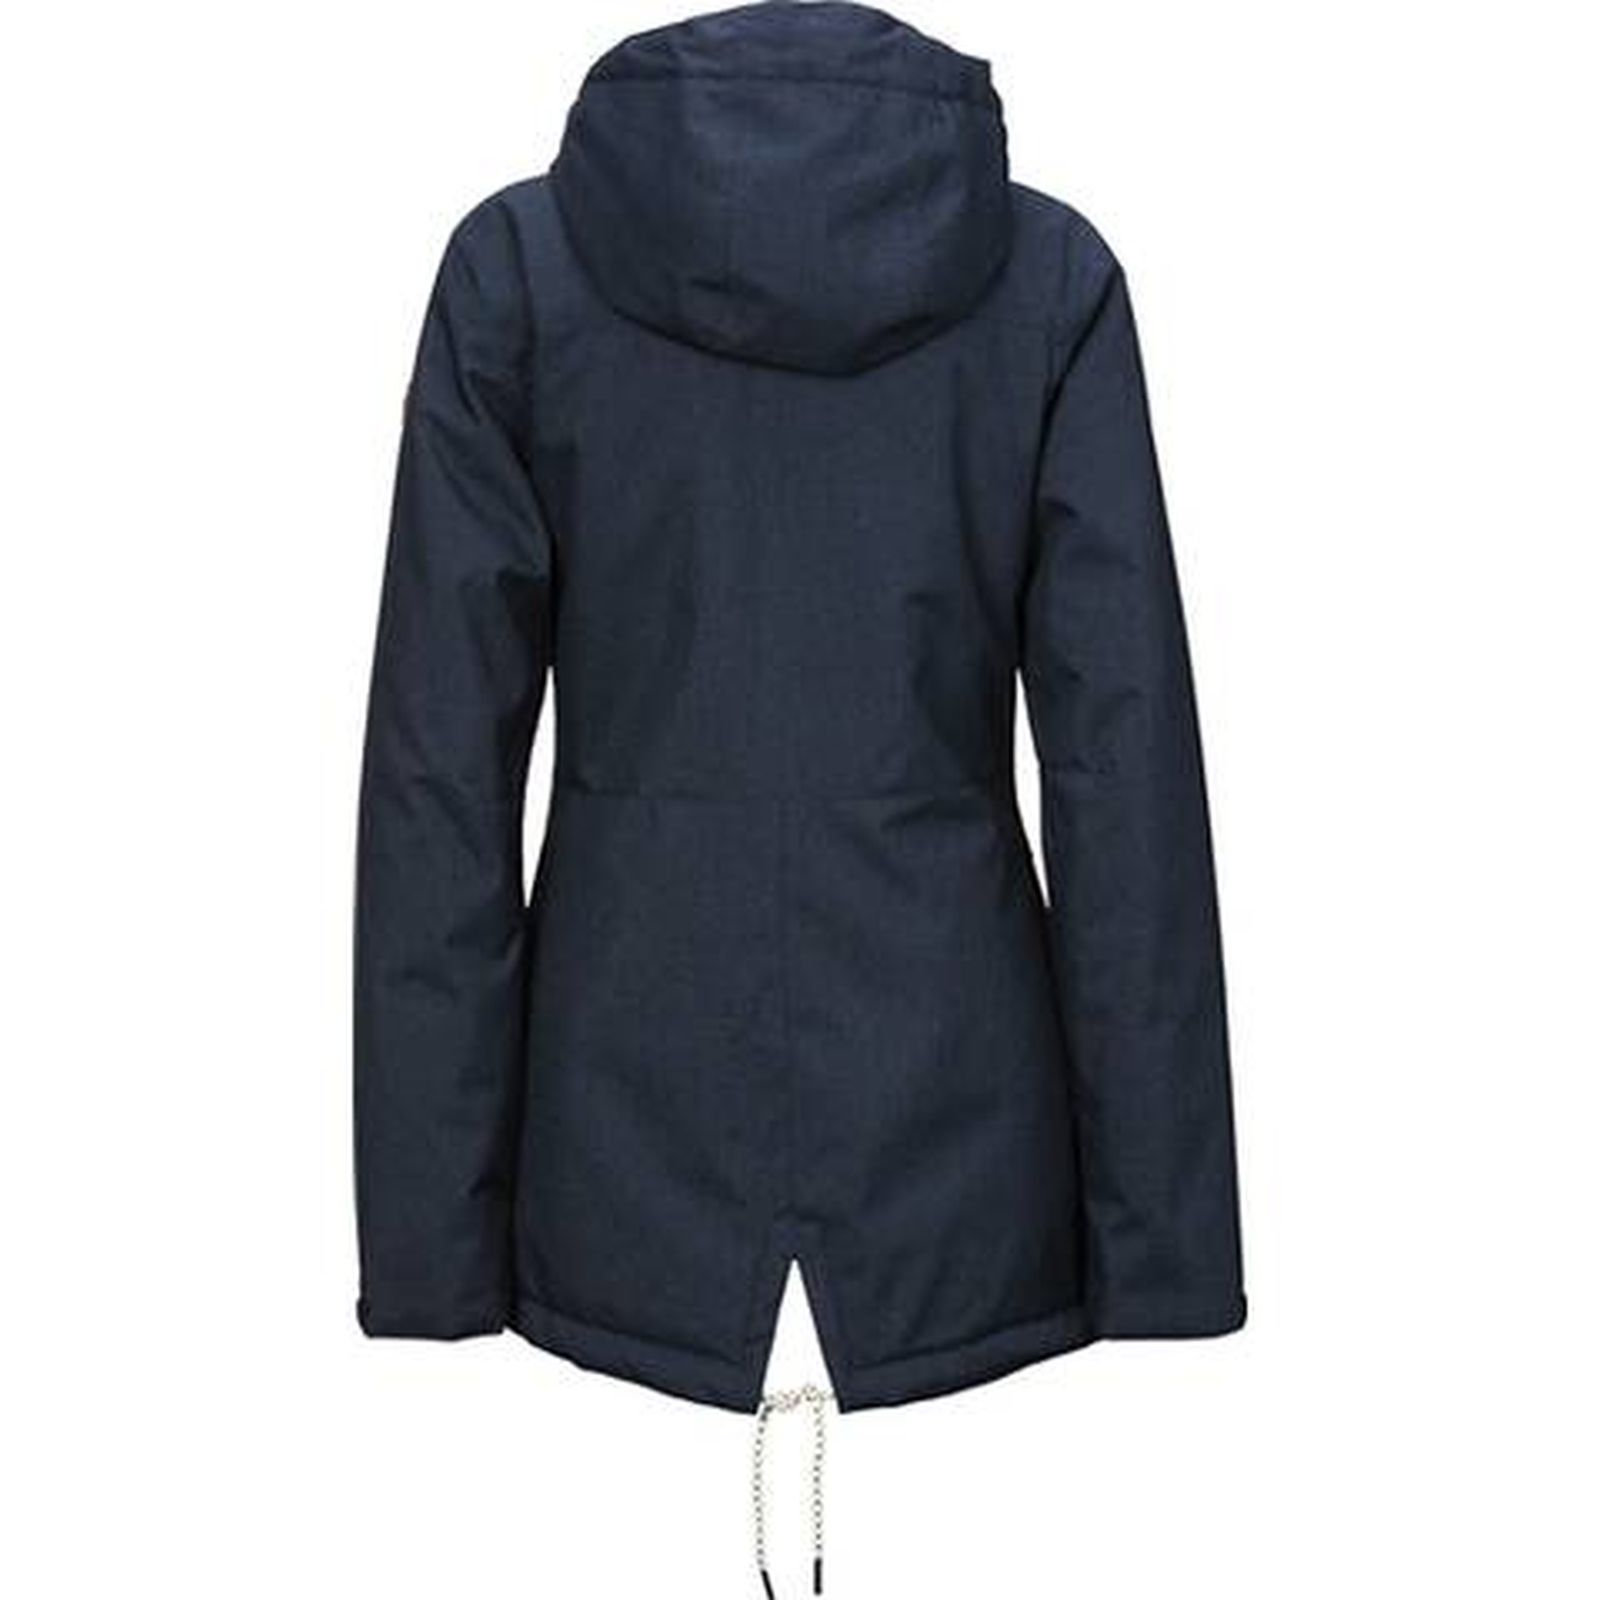 Details about Icepeak Womens Hiking Leisure Hooded Coat Padded Overcoat VINA BLUE show original title